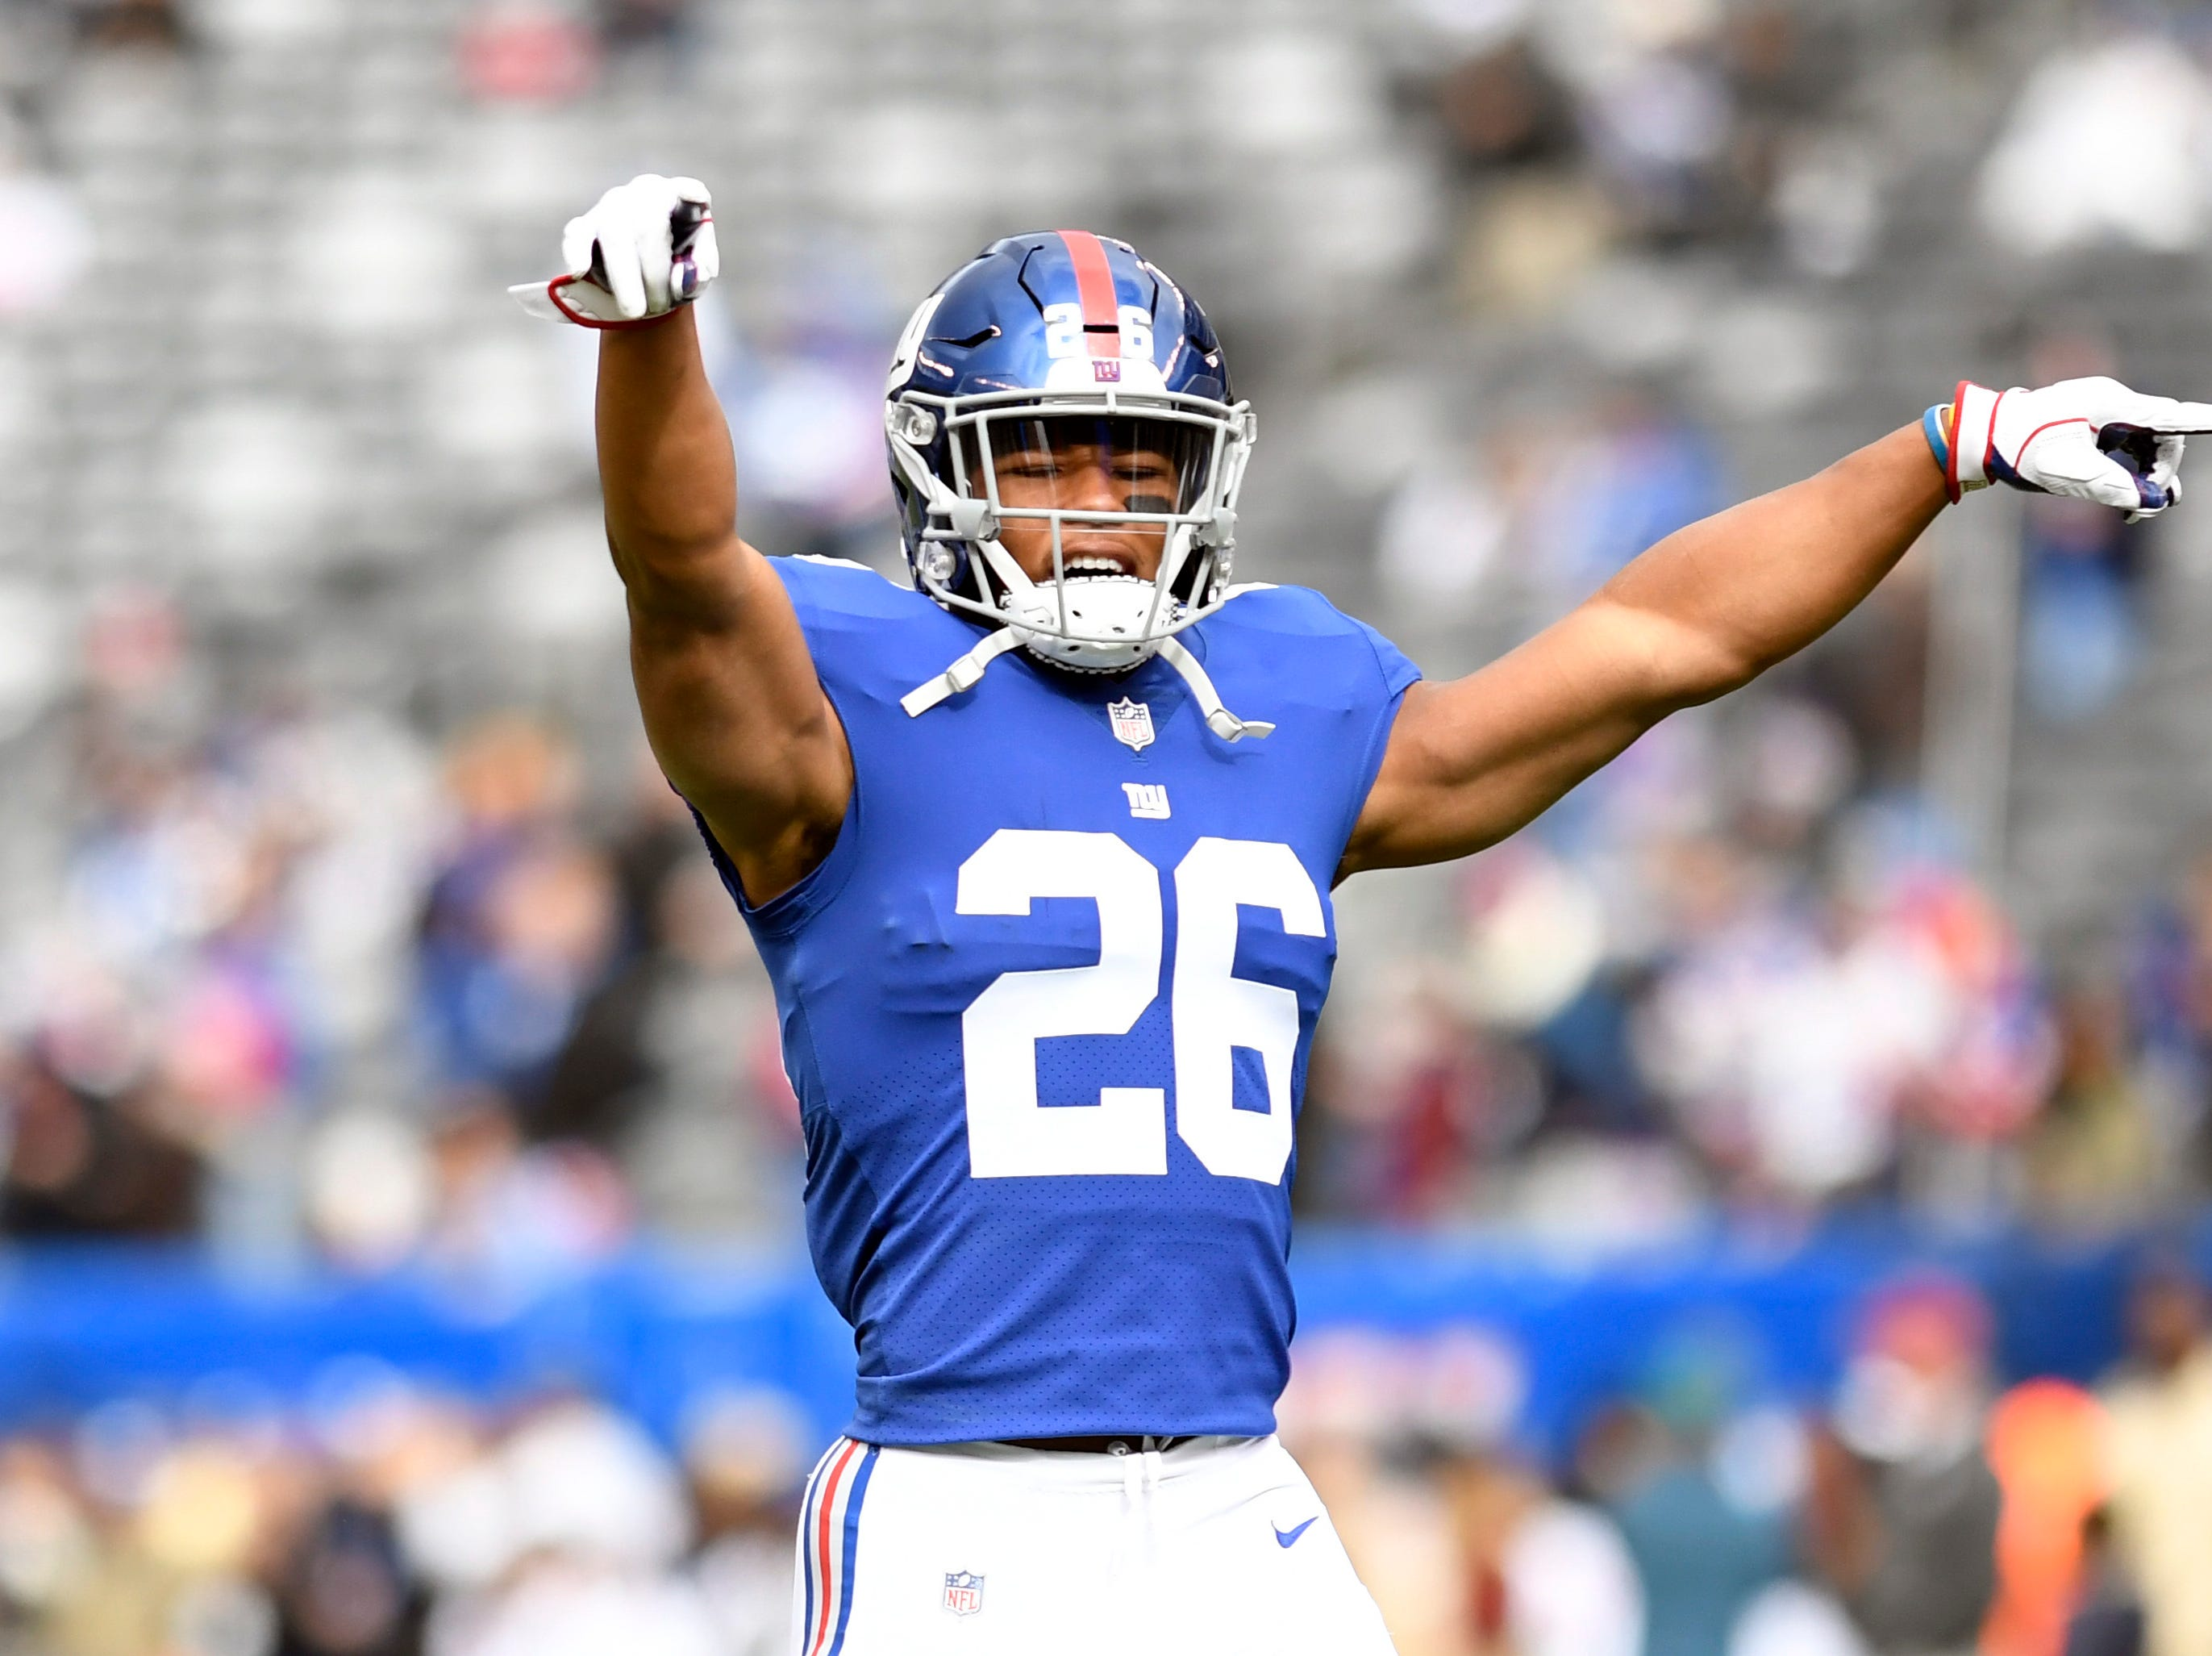 New York Giants running back Saquon Barkley (26) dances during warmups in Week 8 on Sunday, Oct. 28, 2018, in East Rutherford.